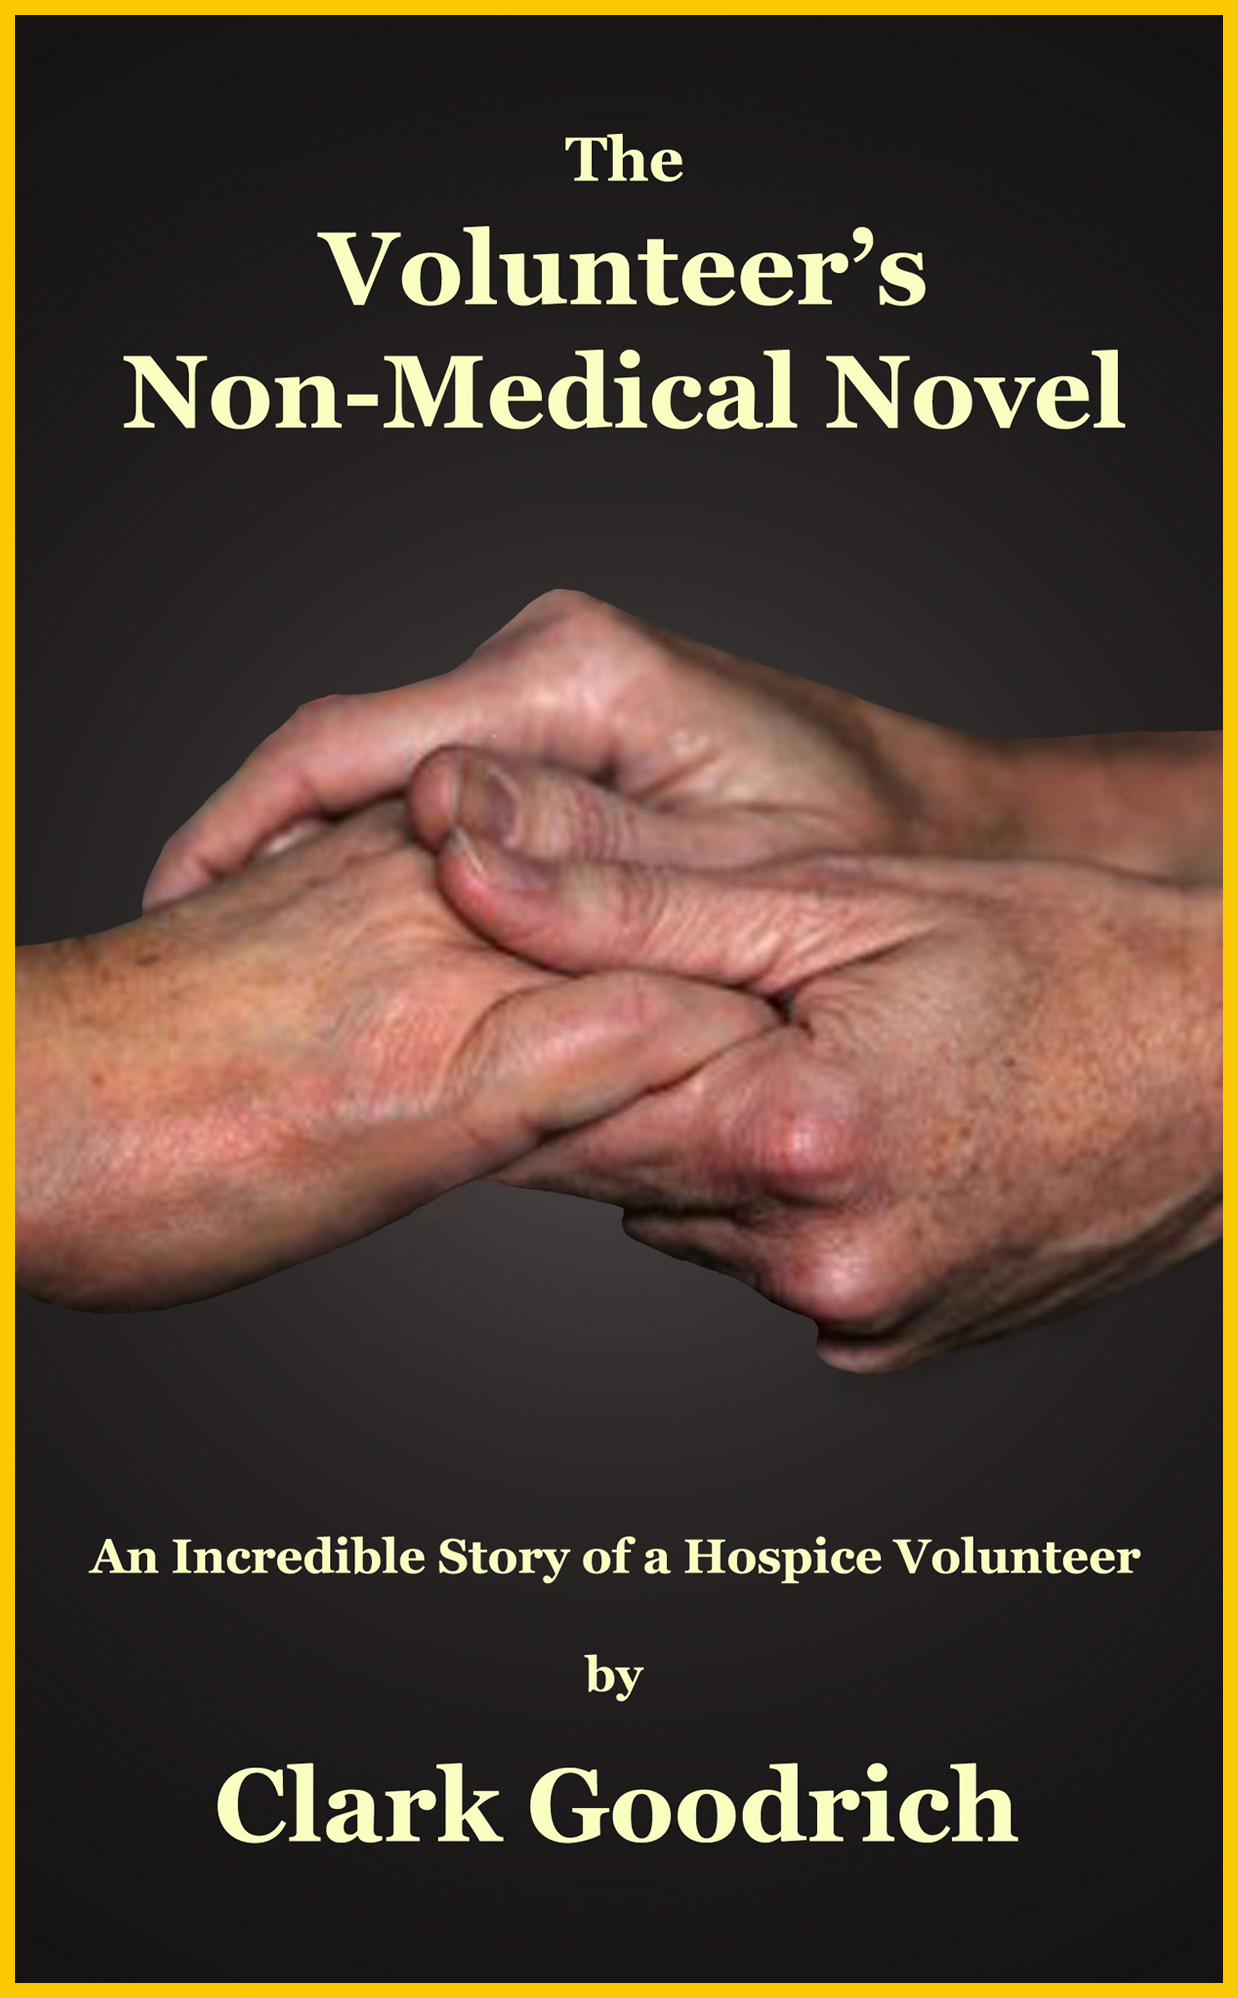 The Volunteer's Non-Medical Novel